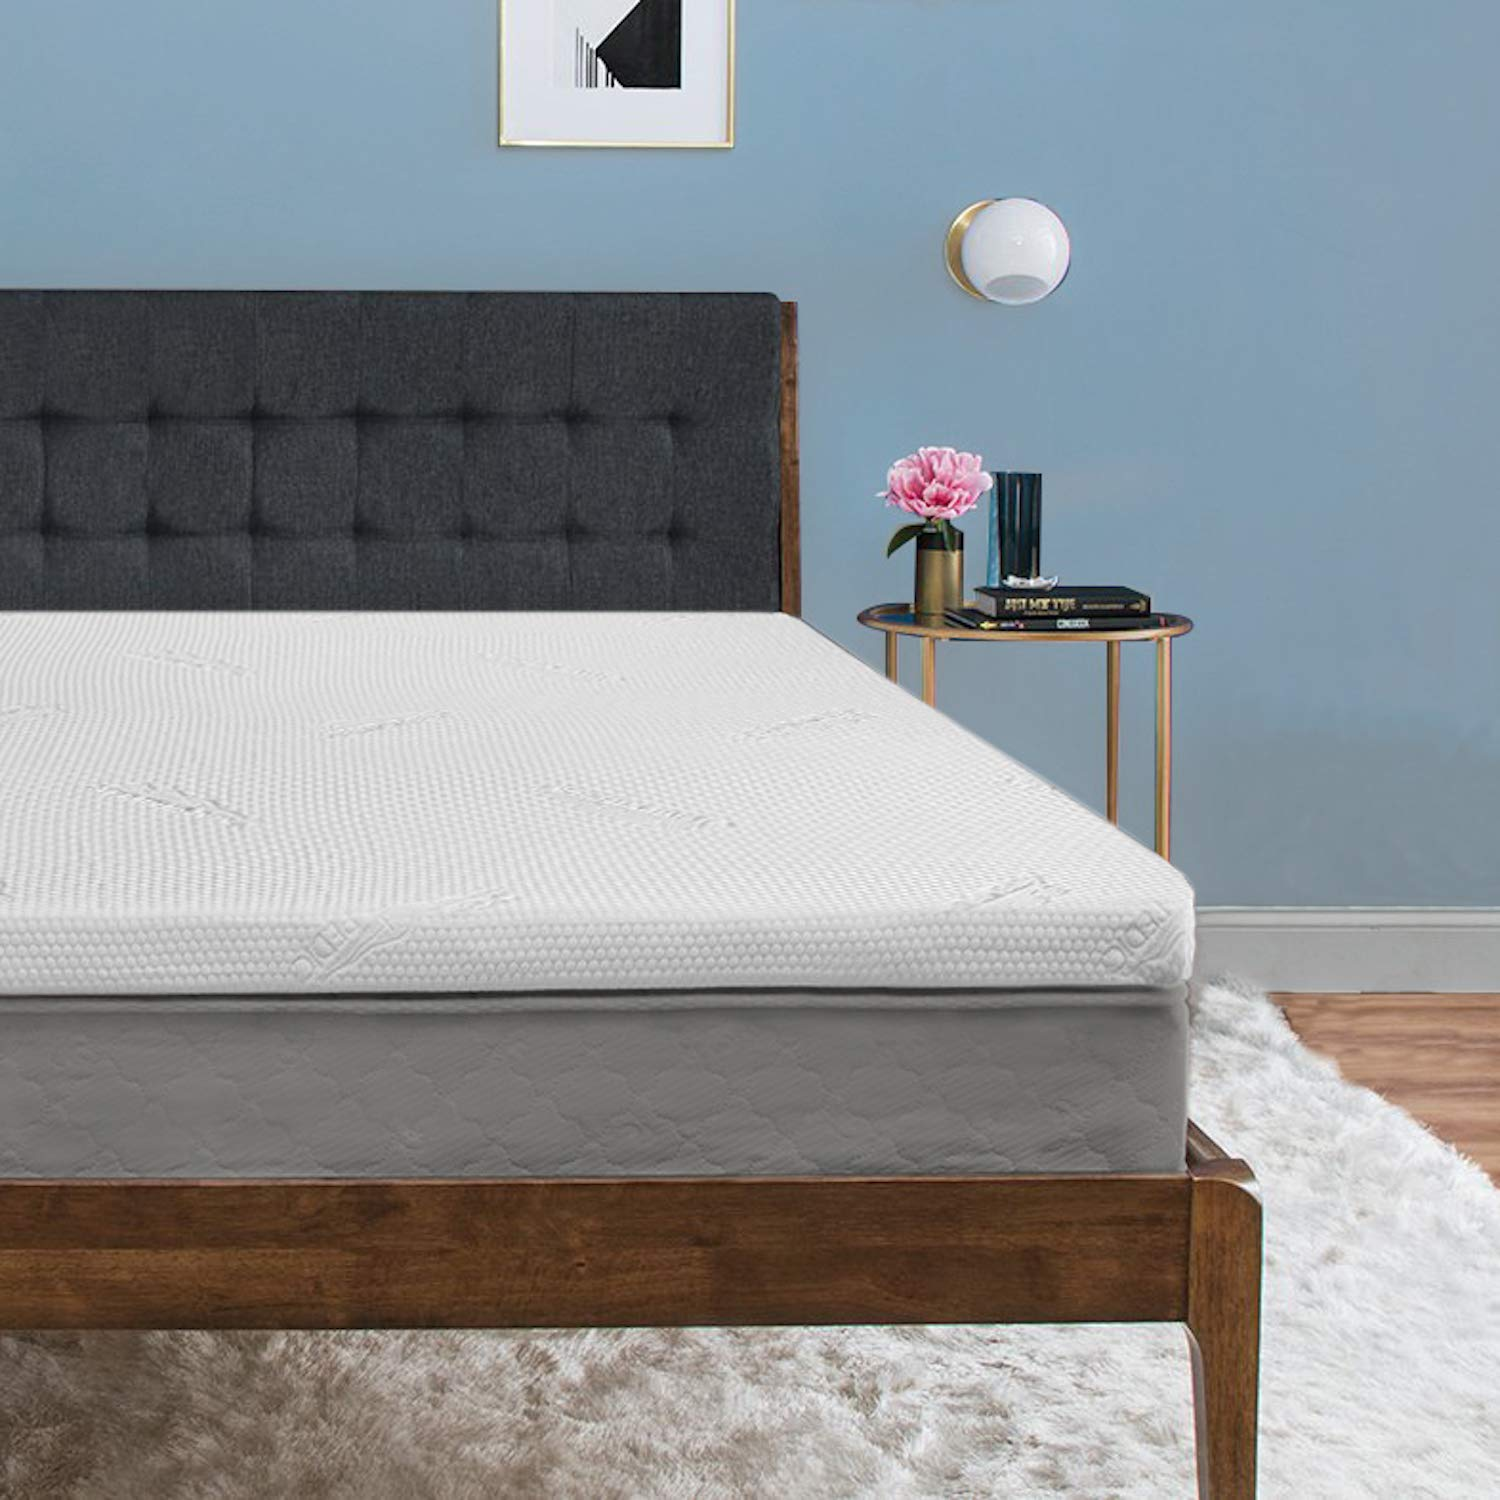 Tempurpedic Mattress Topper.Tempur Pedic Tempur Proform Supreme 3 Inch Queen Mattress Topper Medium Firm Luxury Premium Foam Washable Cover